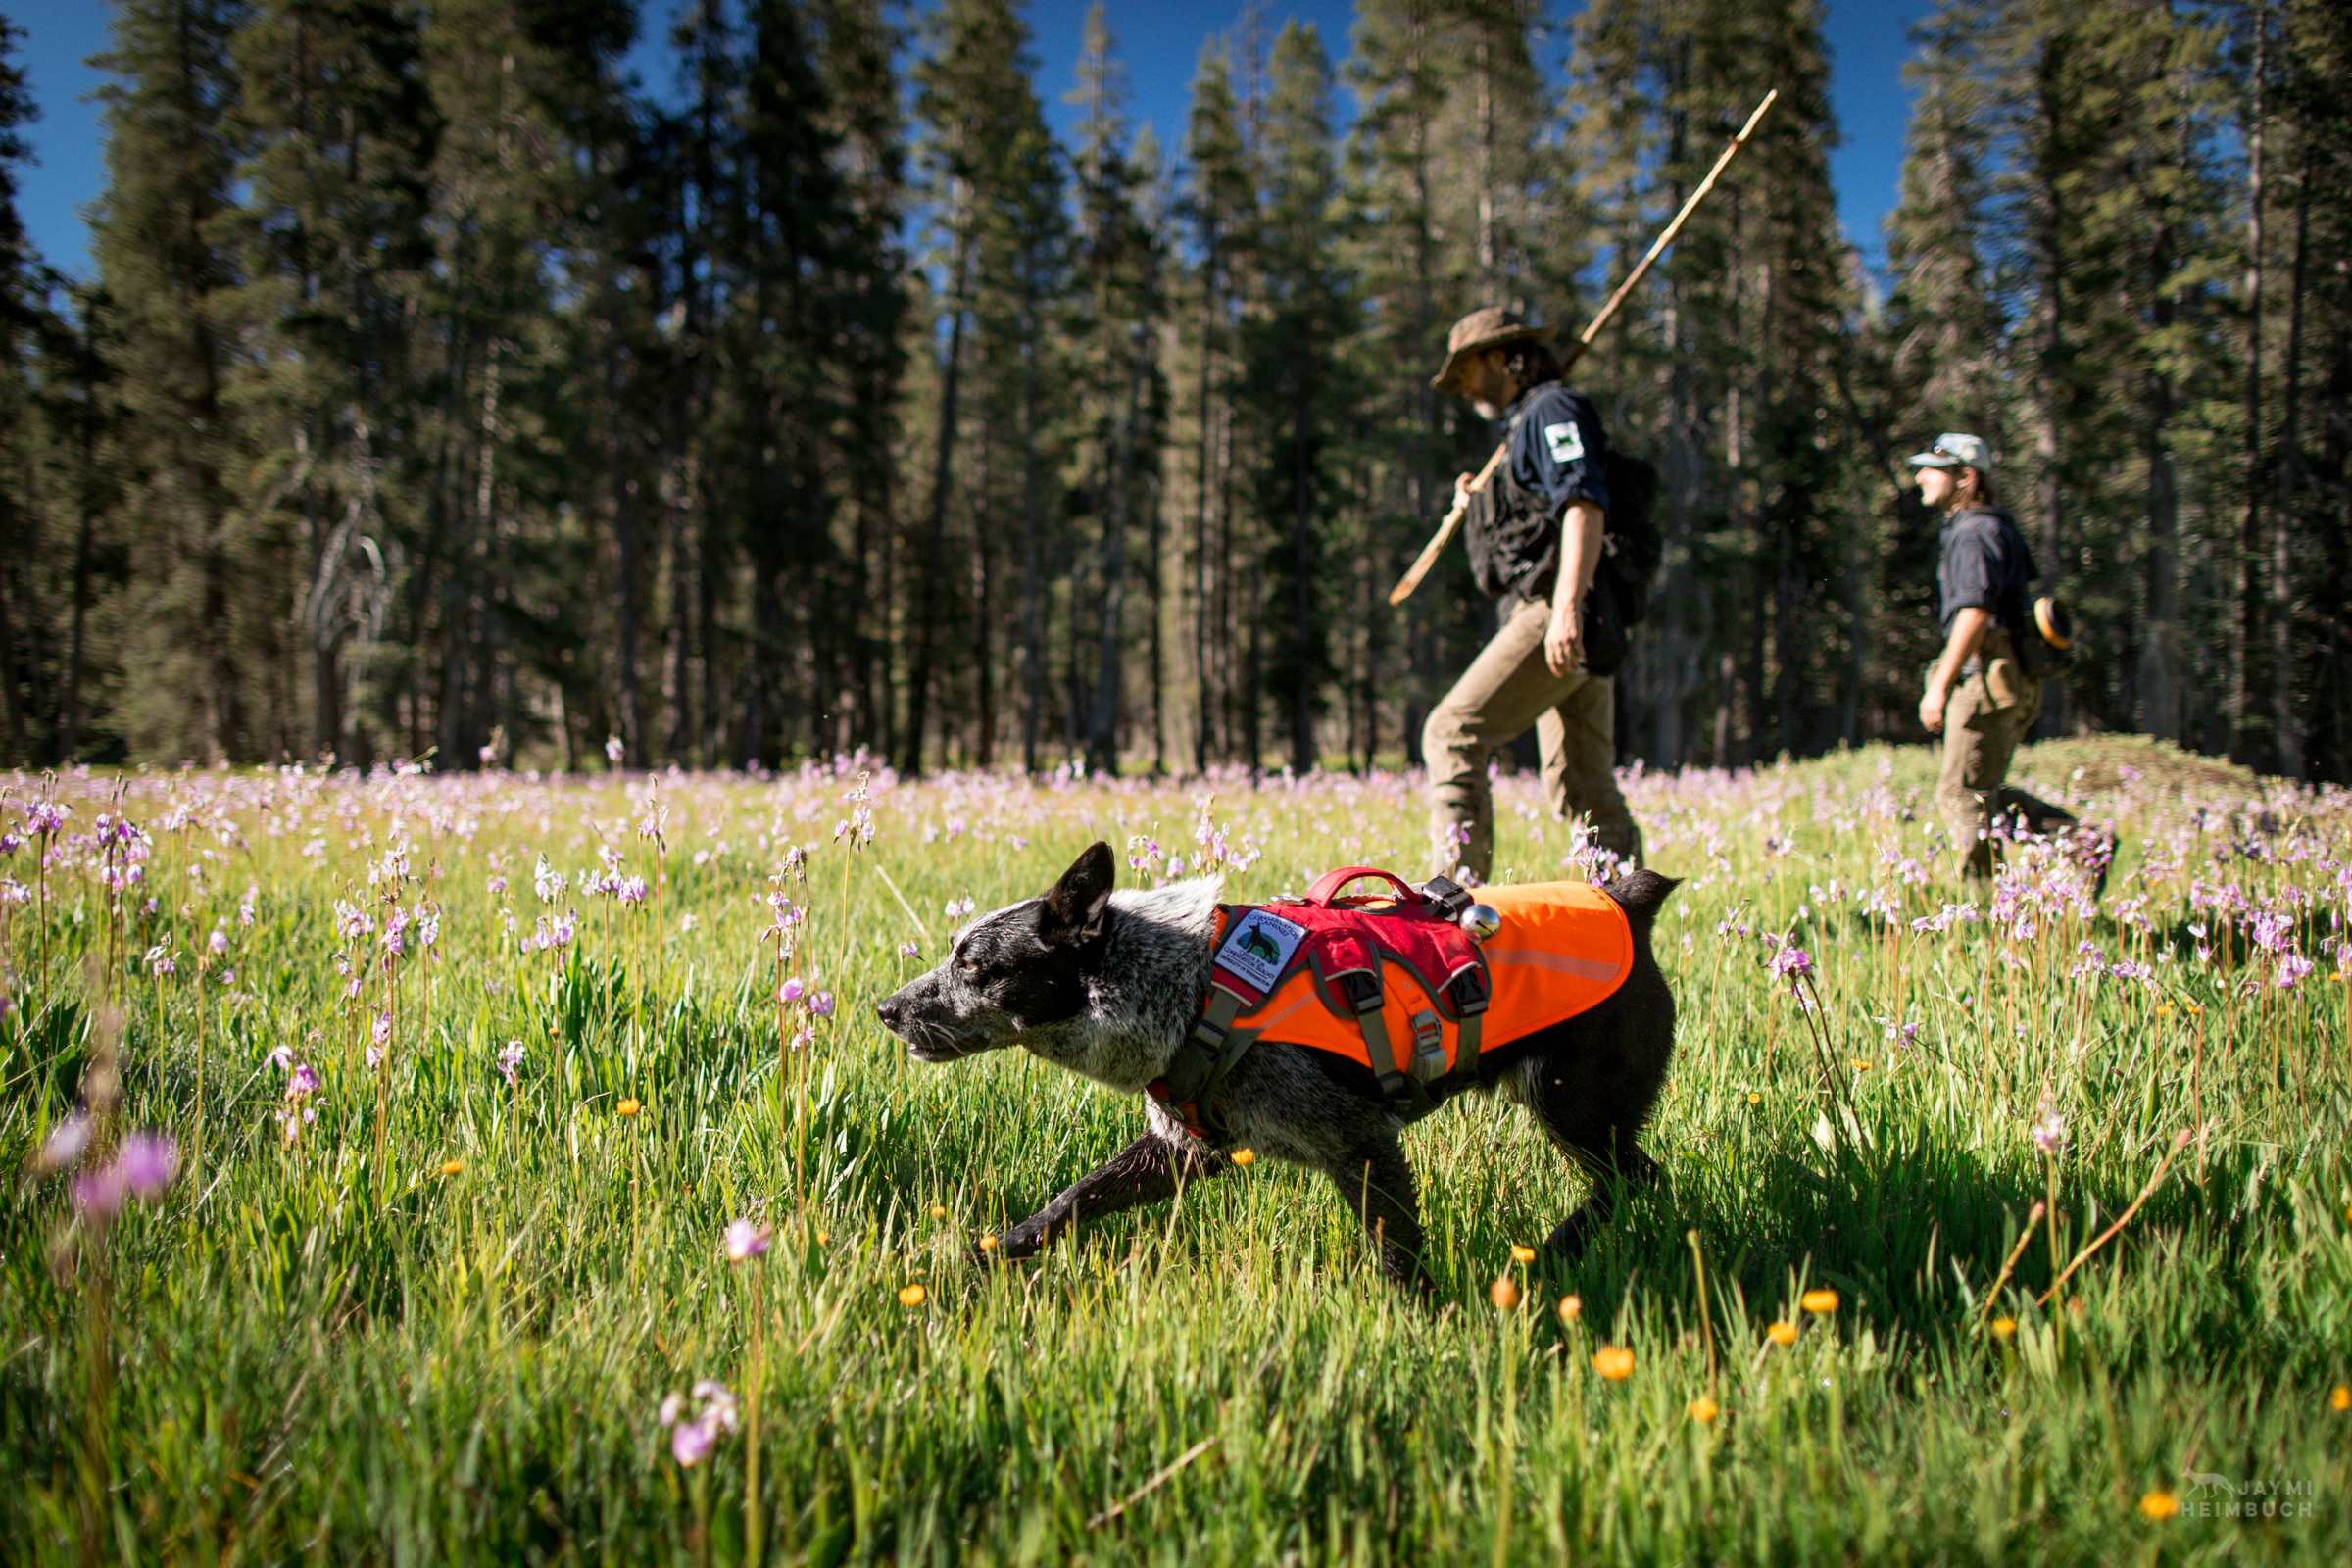 Field technicians Caleb Staneck and Heath Smith travel through a meadow in California's Sierra Nevada mountains with scent detection dog (canis lupus familiaris) Pips. The teams survey for Pacific fisher, which is under consideration as an endangered species. The team is part of University of Washington Center for Conservation Biology's Conservation Canines program.